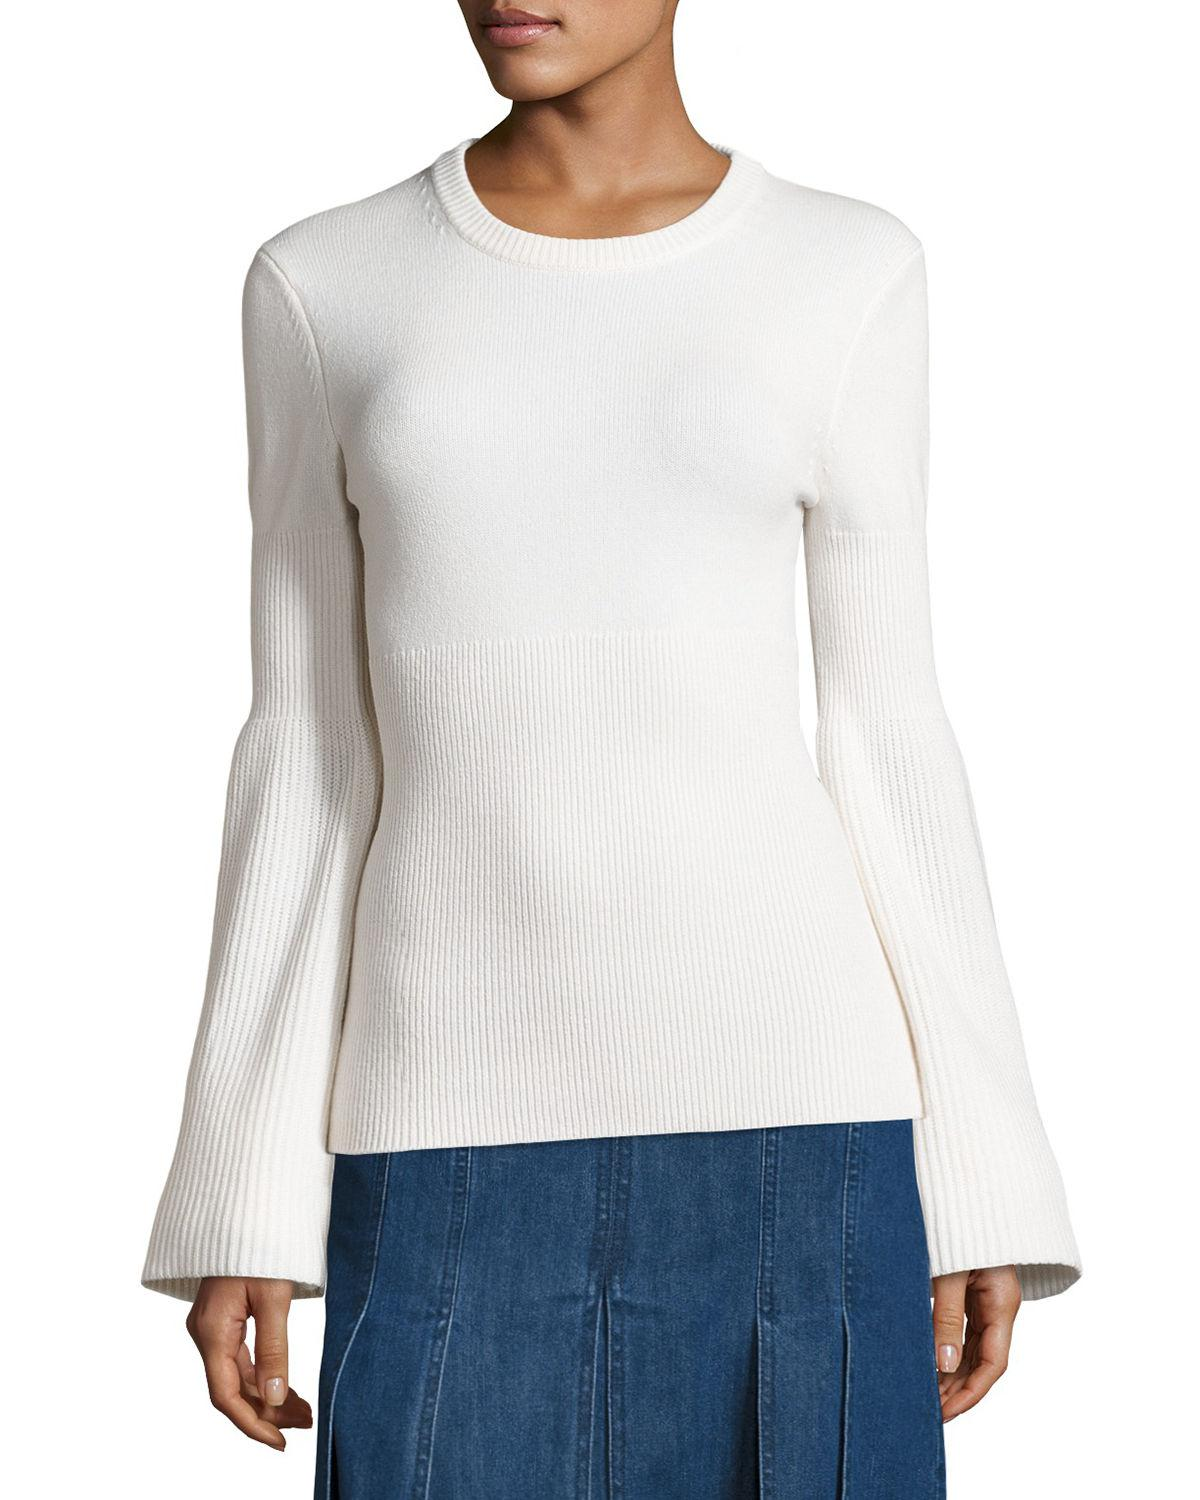 bb89fb81cc Lyst - Michael Kors Cashmere Bell-sleeve Ribbed Sweater in White